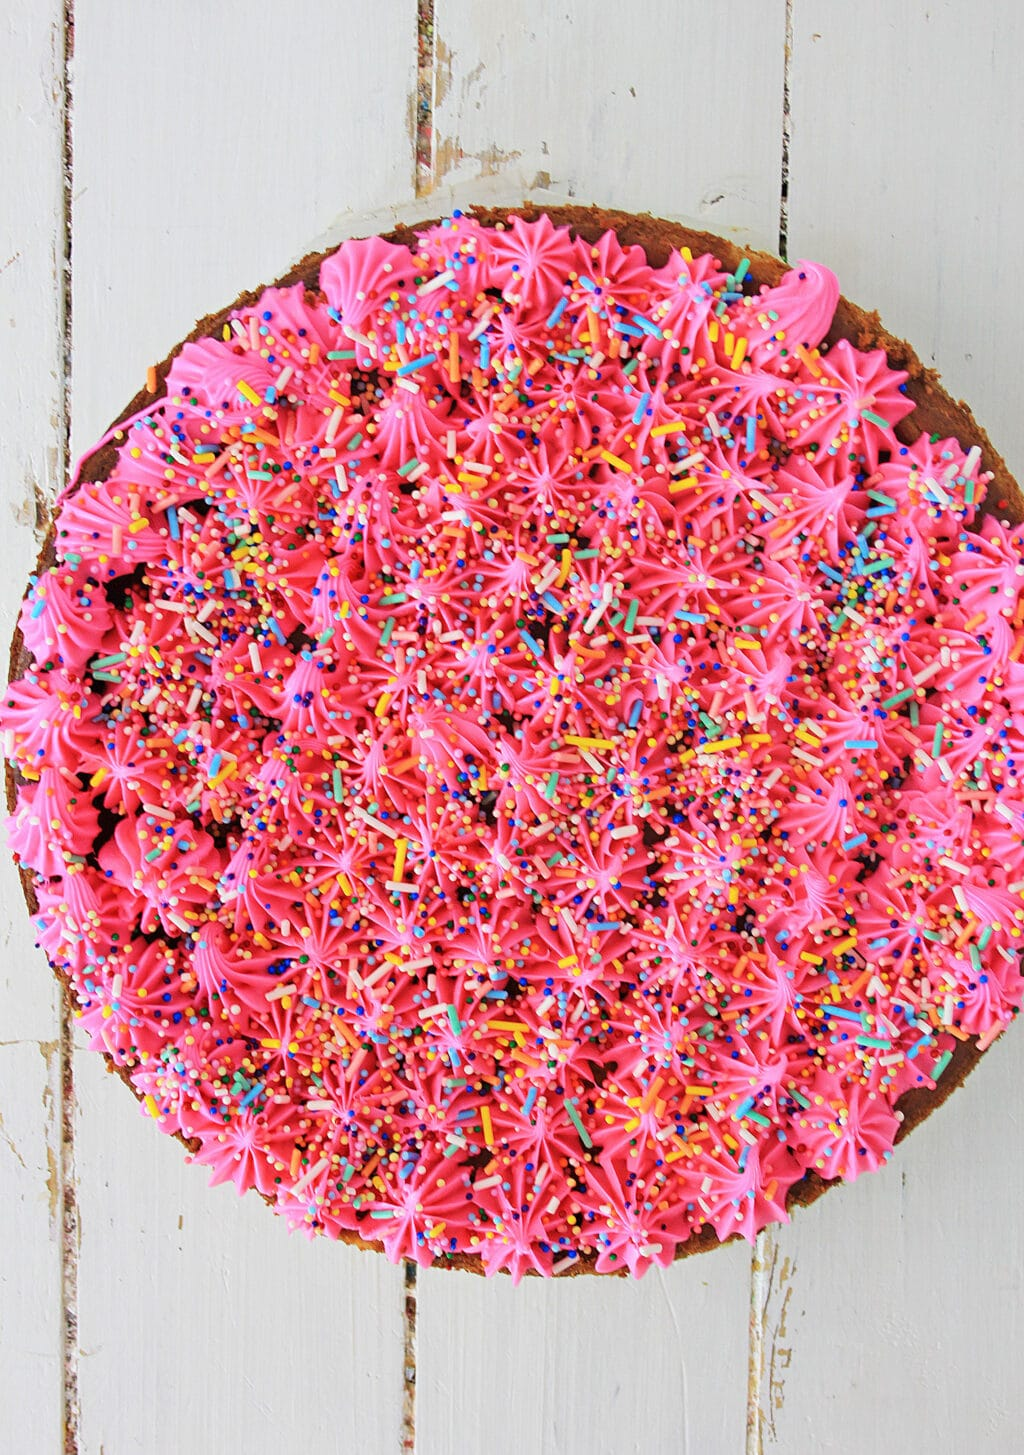 A top view of cheesecake with hot pink frosting and rainbow sprinkles